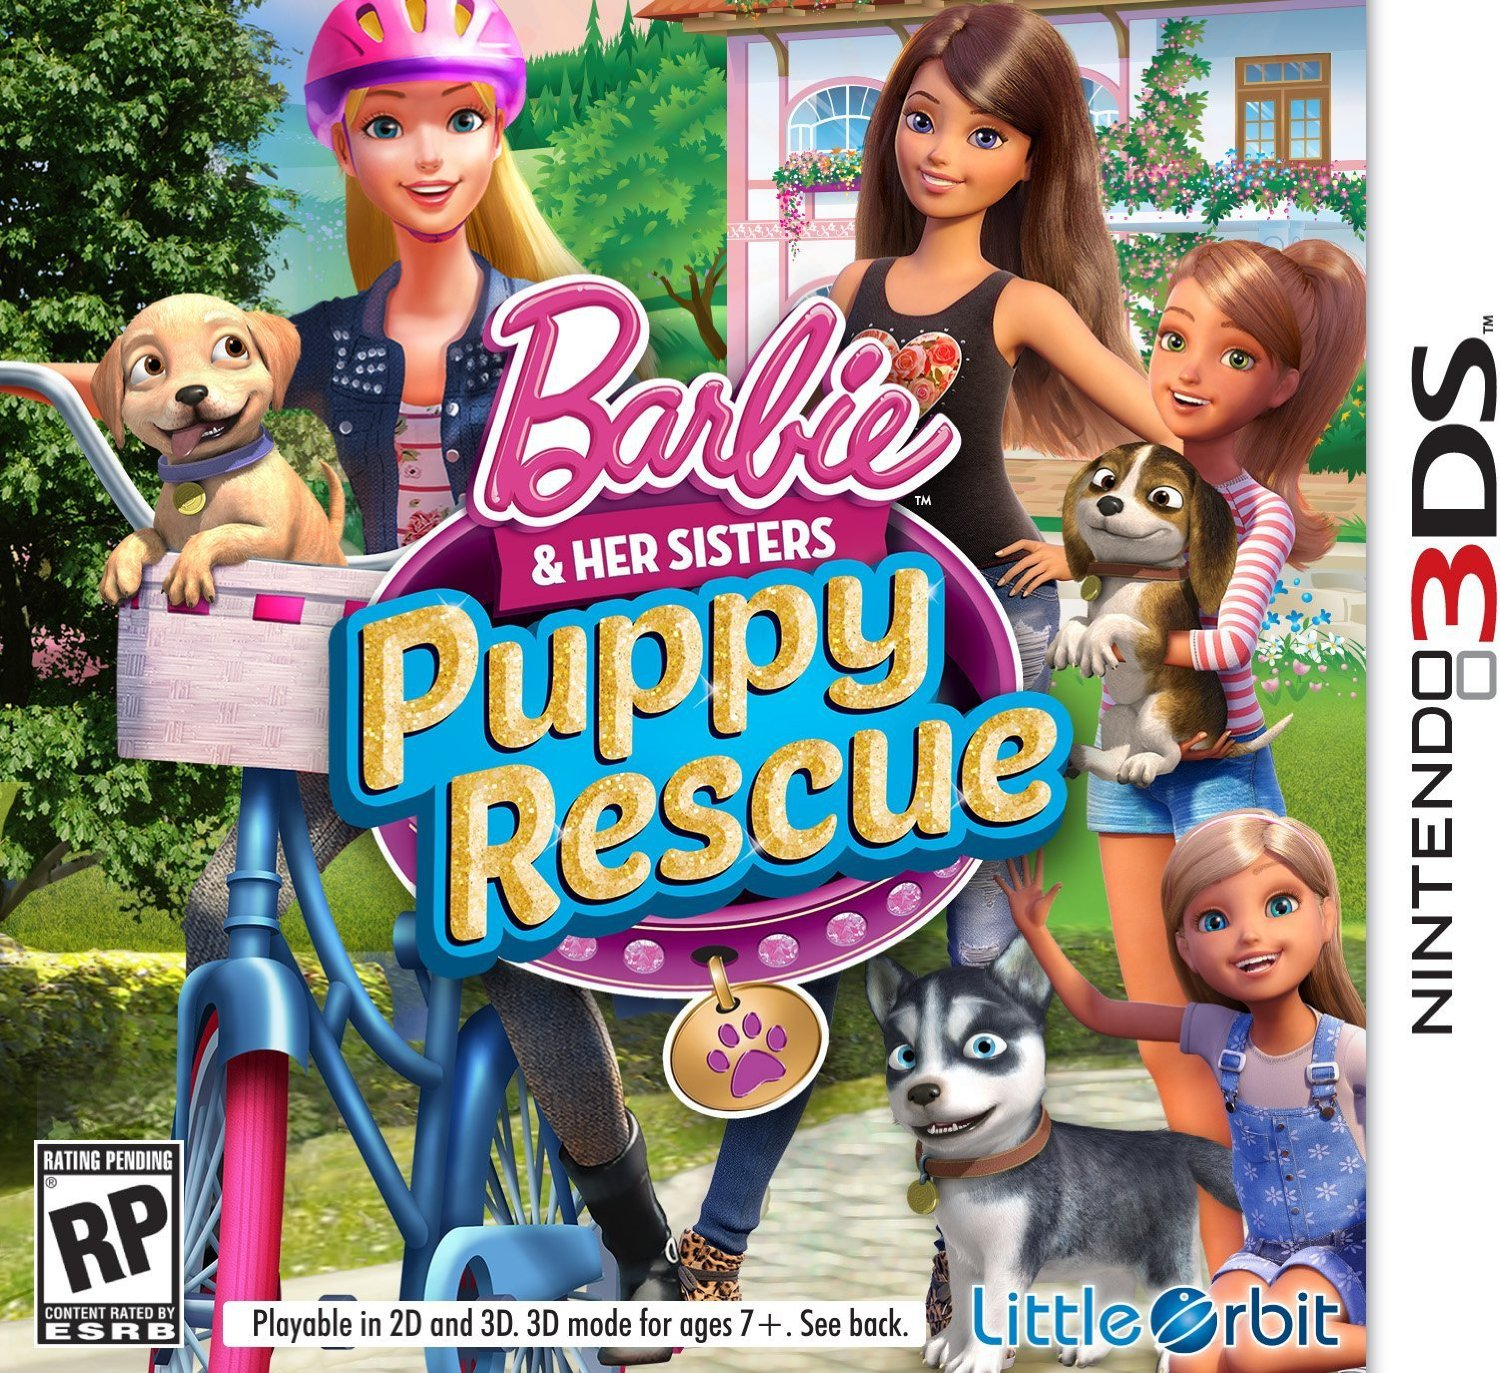 Barbie & Her Sisters Puppy